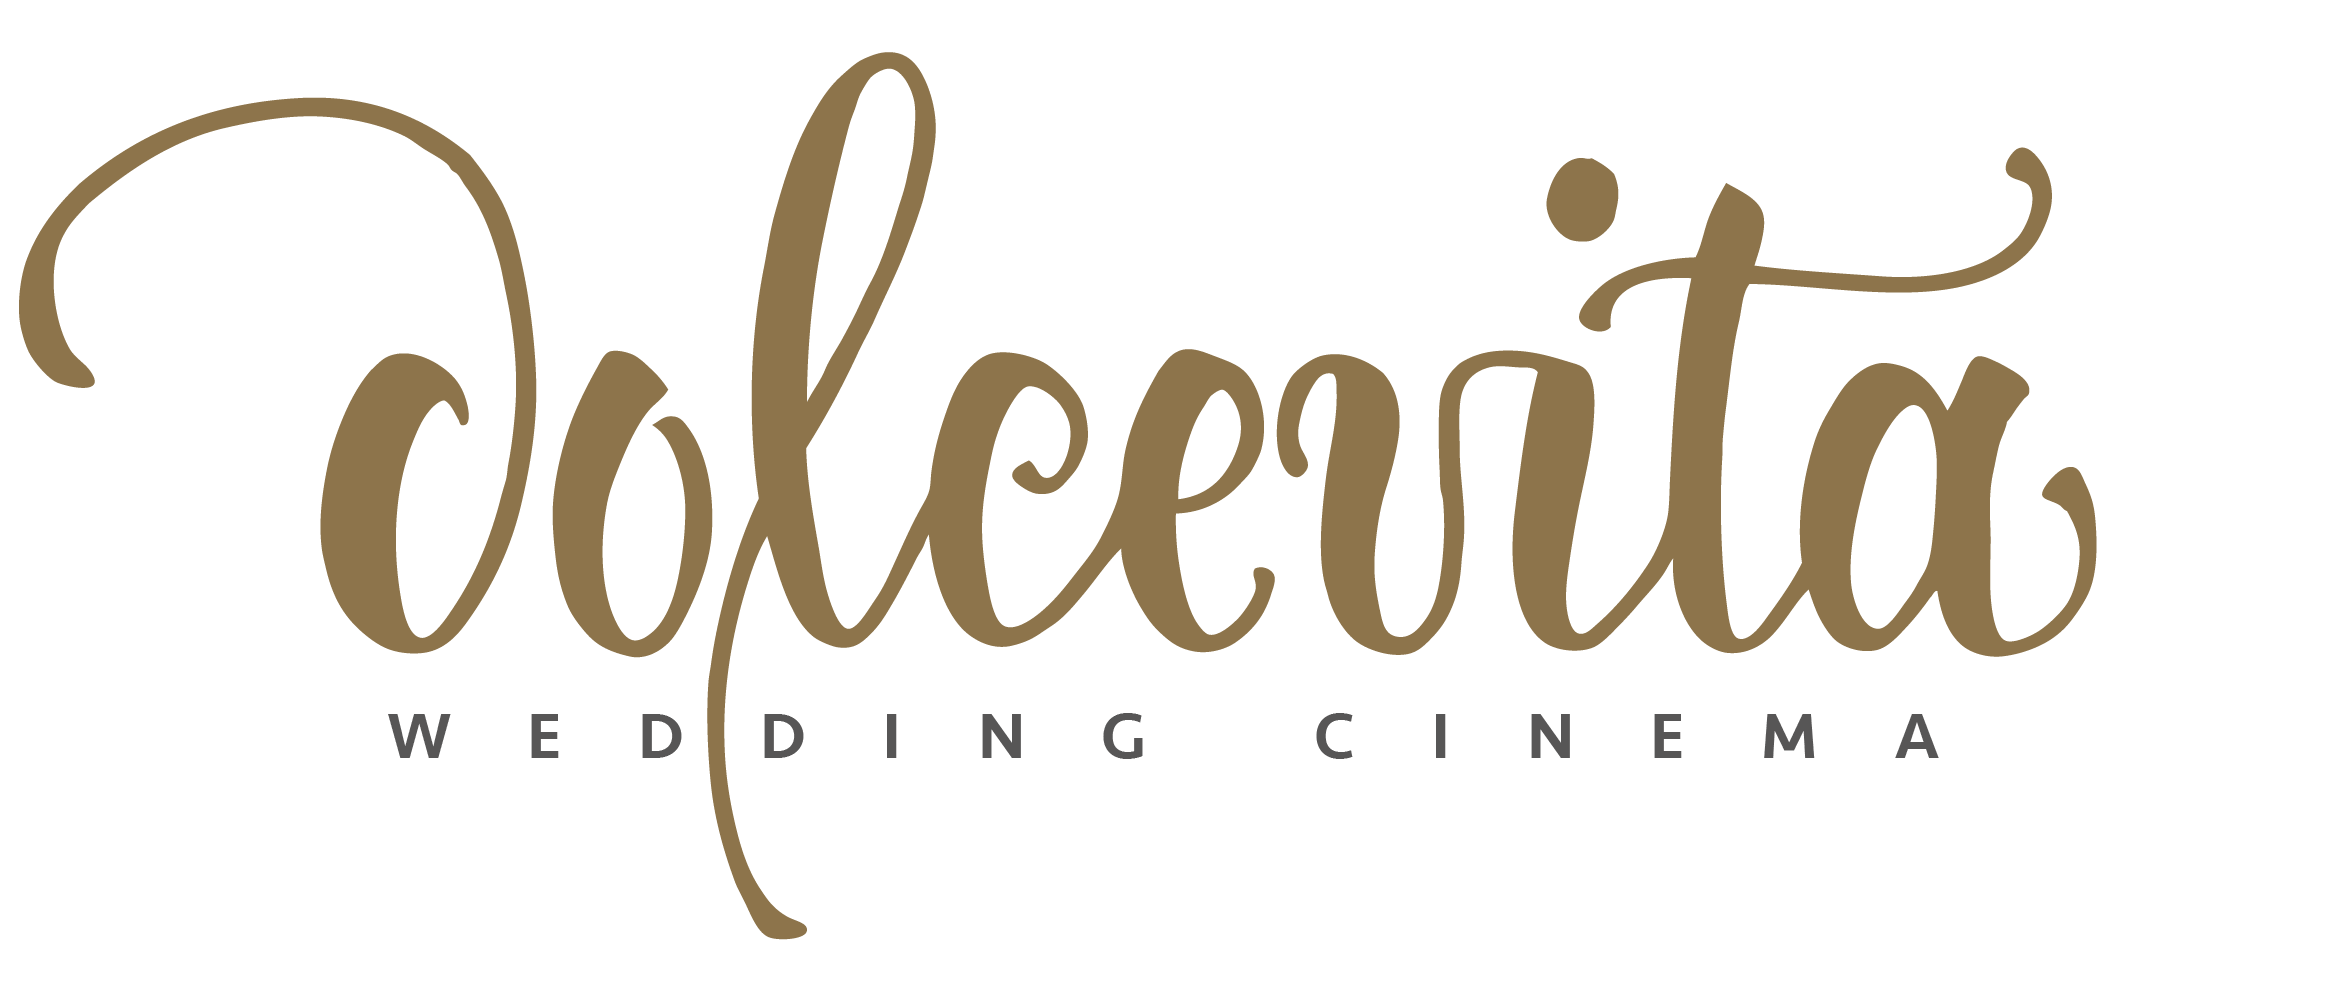 DOLCEVITA WEDDING CINEMA - Destination Wedding Videographer Italy